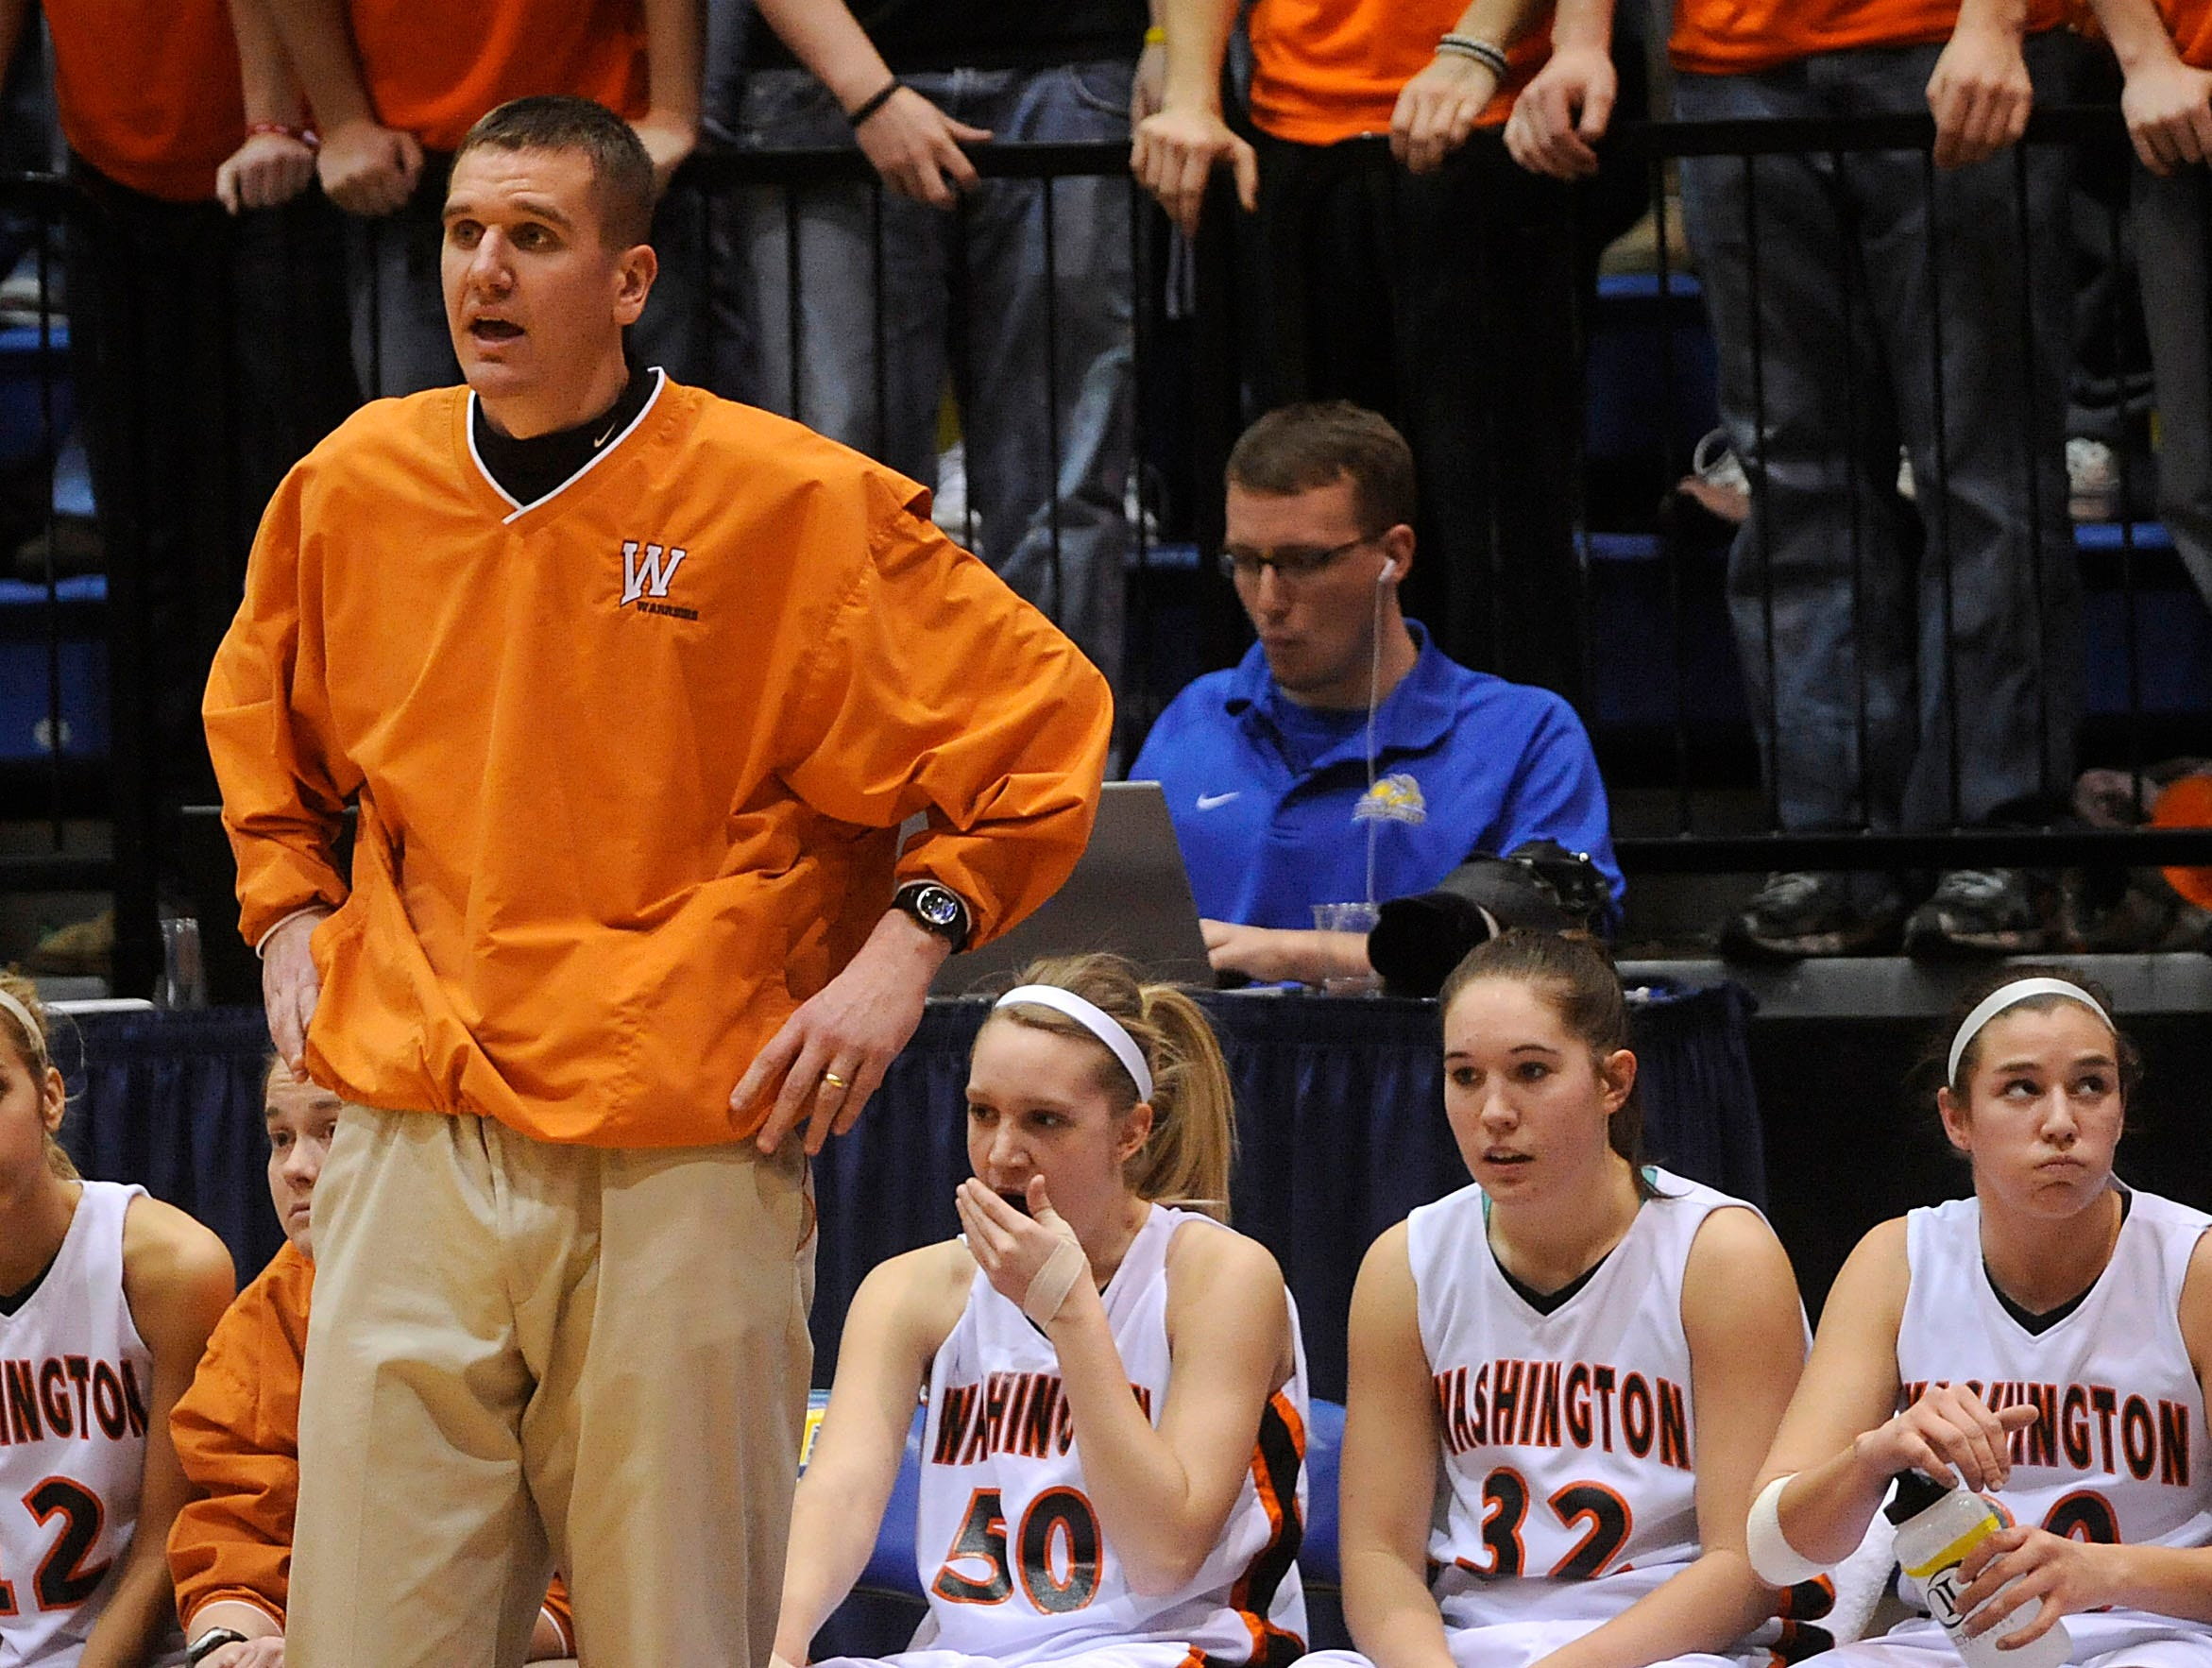 Washington head coach Nate Malchow watches over the Warriors as they take on Aberdeen in the second half of Thursday's South Dakota girls State AA  quarterfinal game at Frost Arena in Brookings. Aberdeen Central beat Washington 54-53.